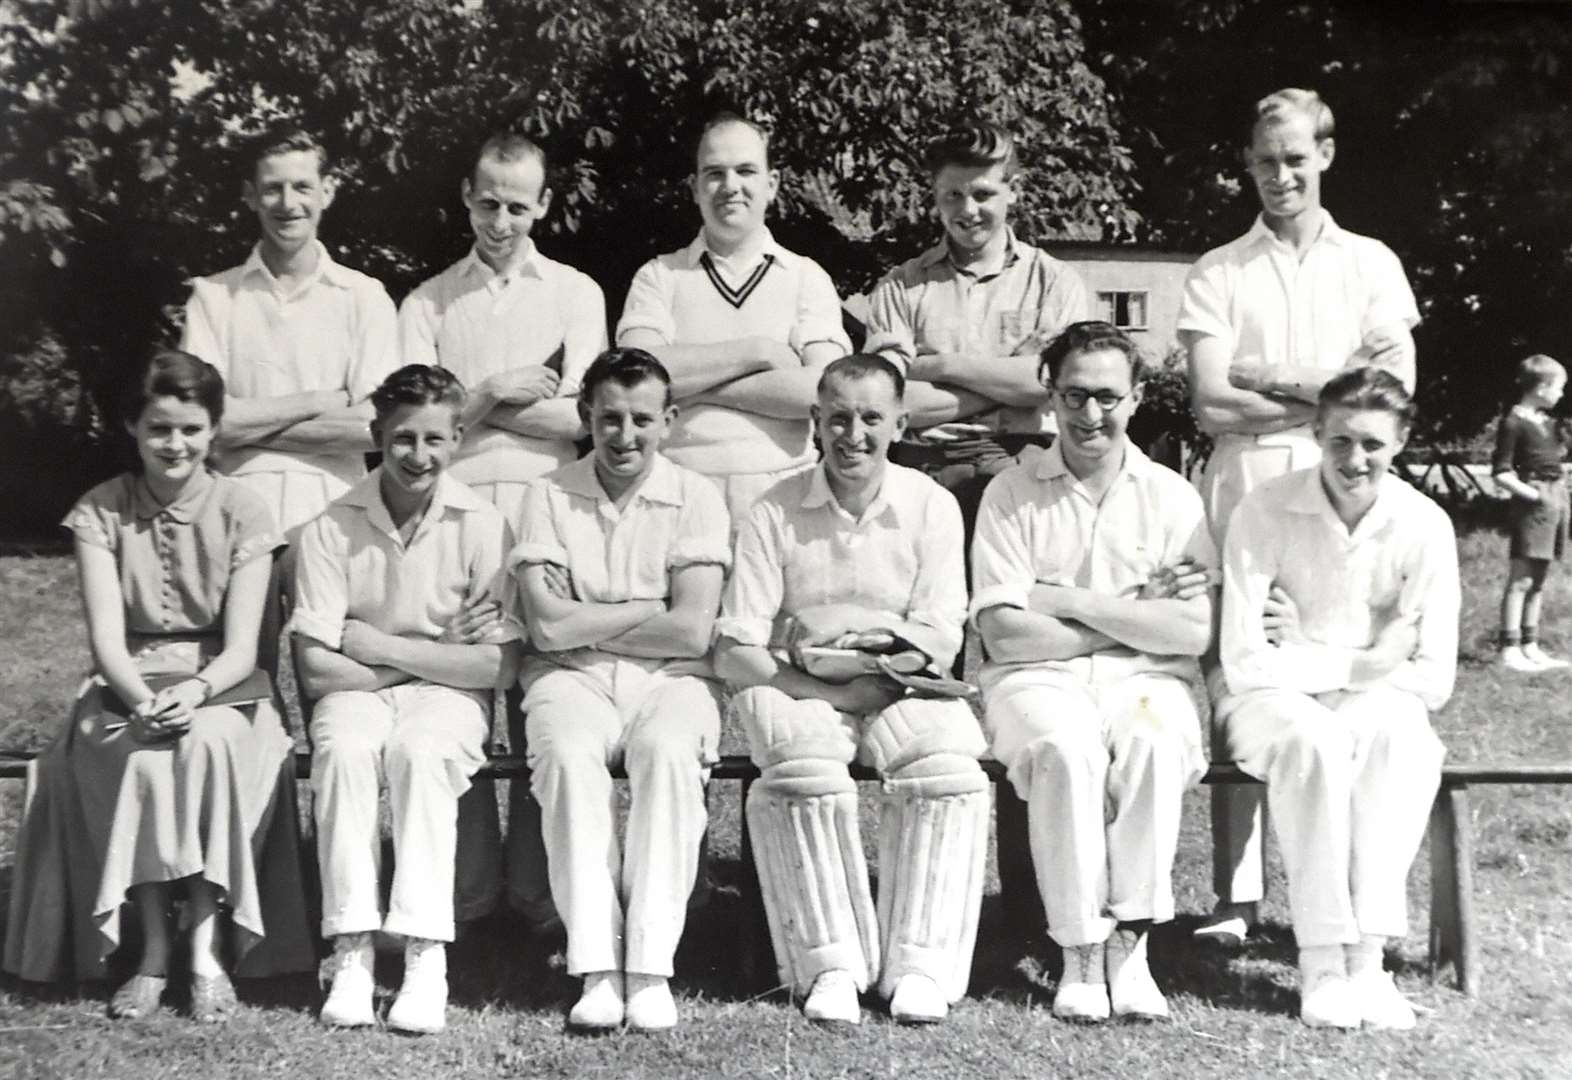 MEMORY LANE: Names of team pictured in 1954 have us stumped